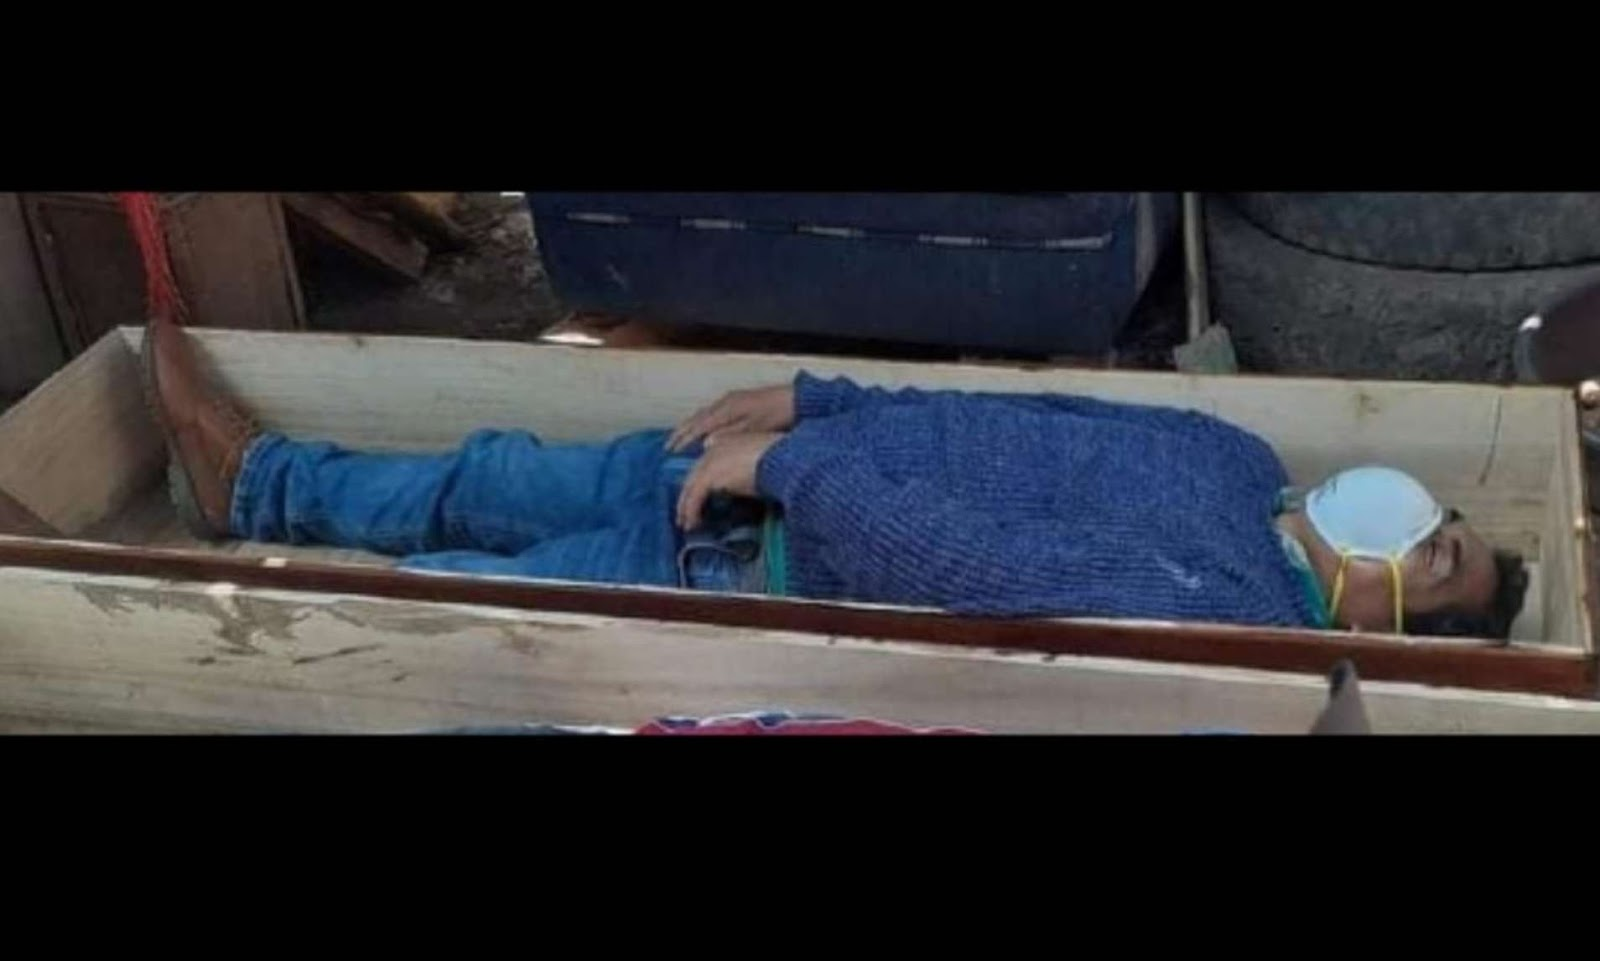 Peru Mayor who slept closed himself in a coffin to avoid curfew rules